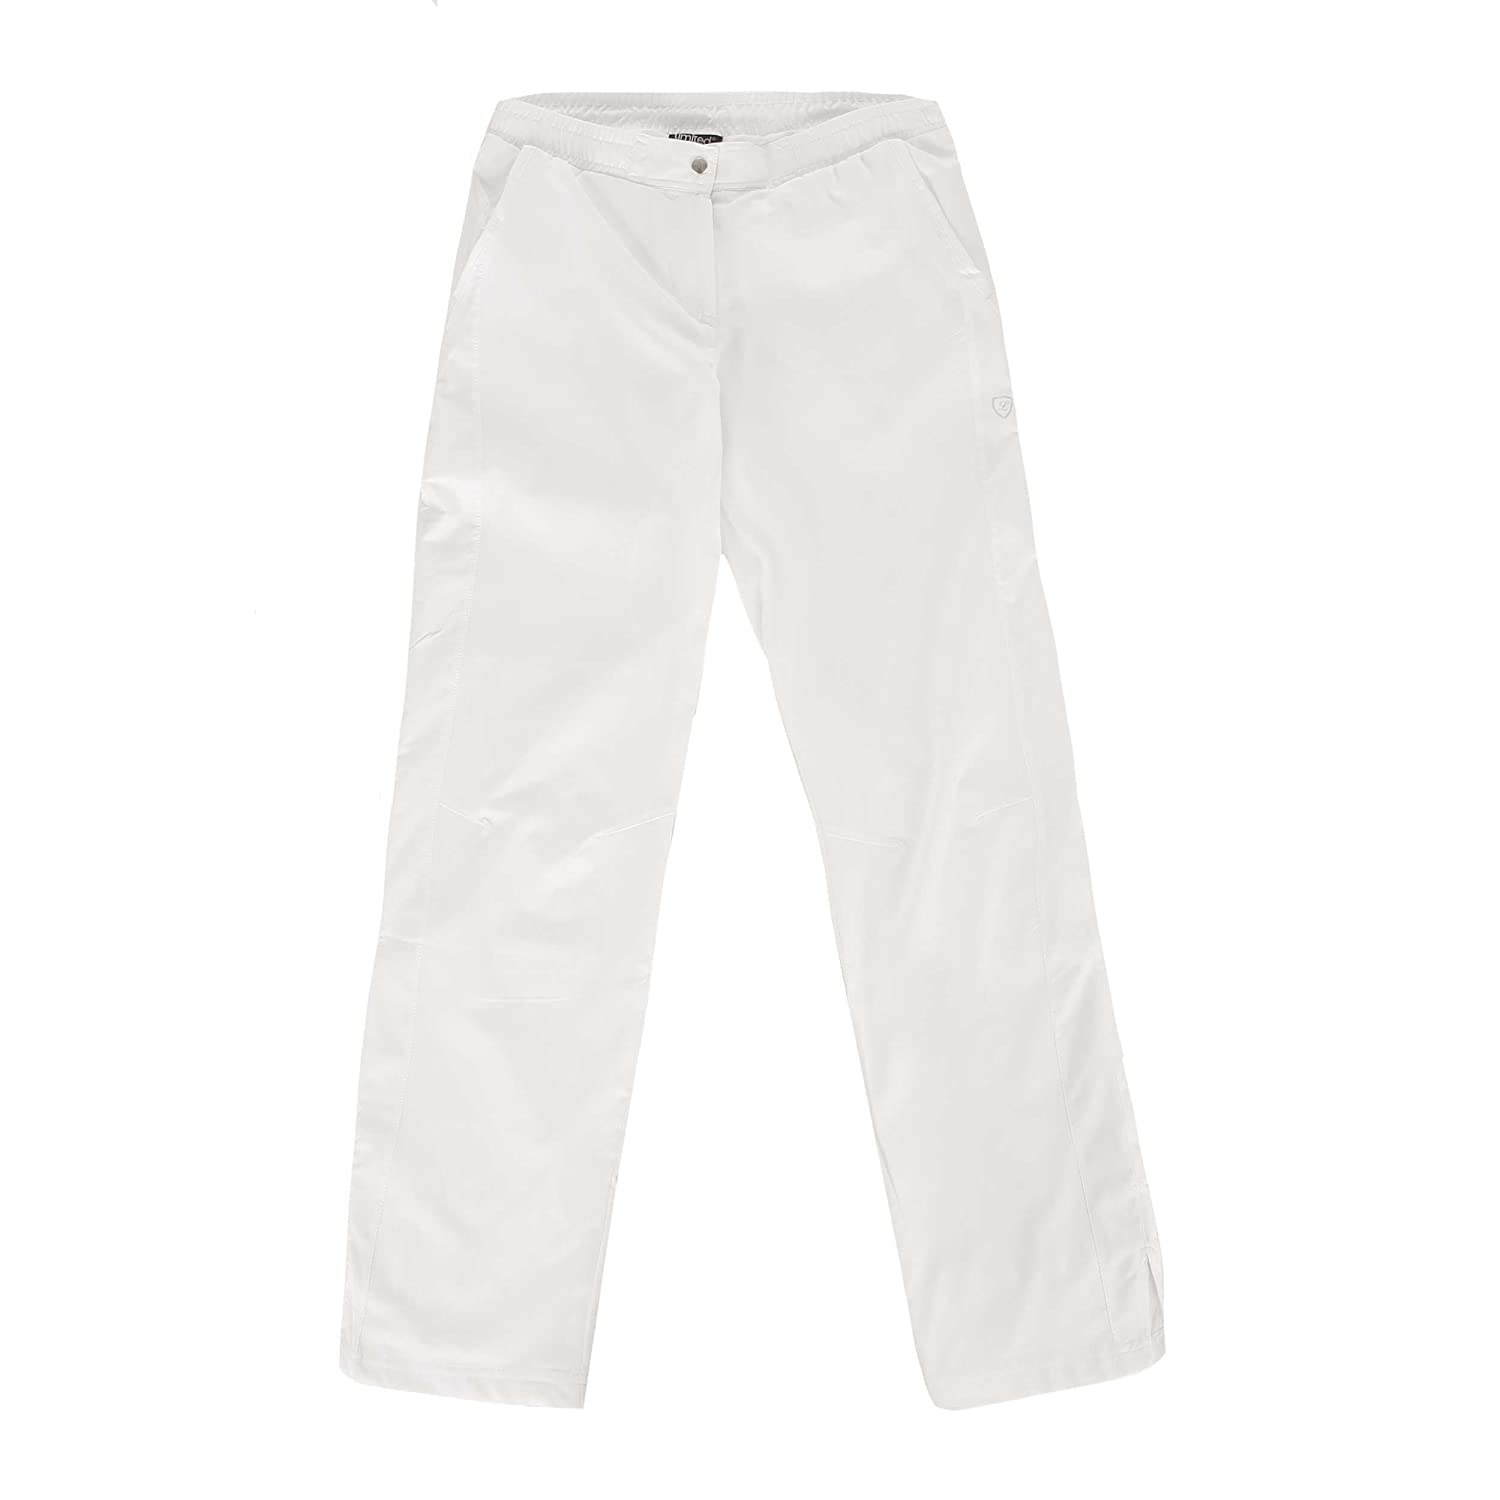 Limited Sports Oberbekleidung Pants Single Classic Stretch